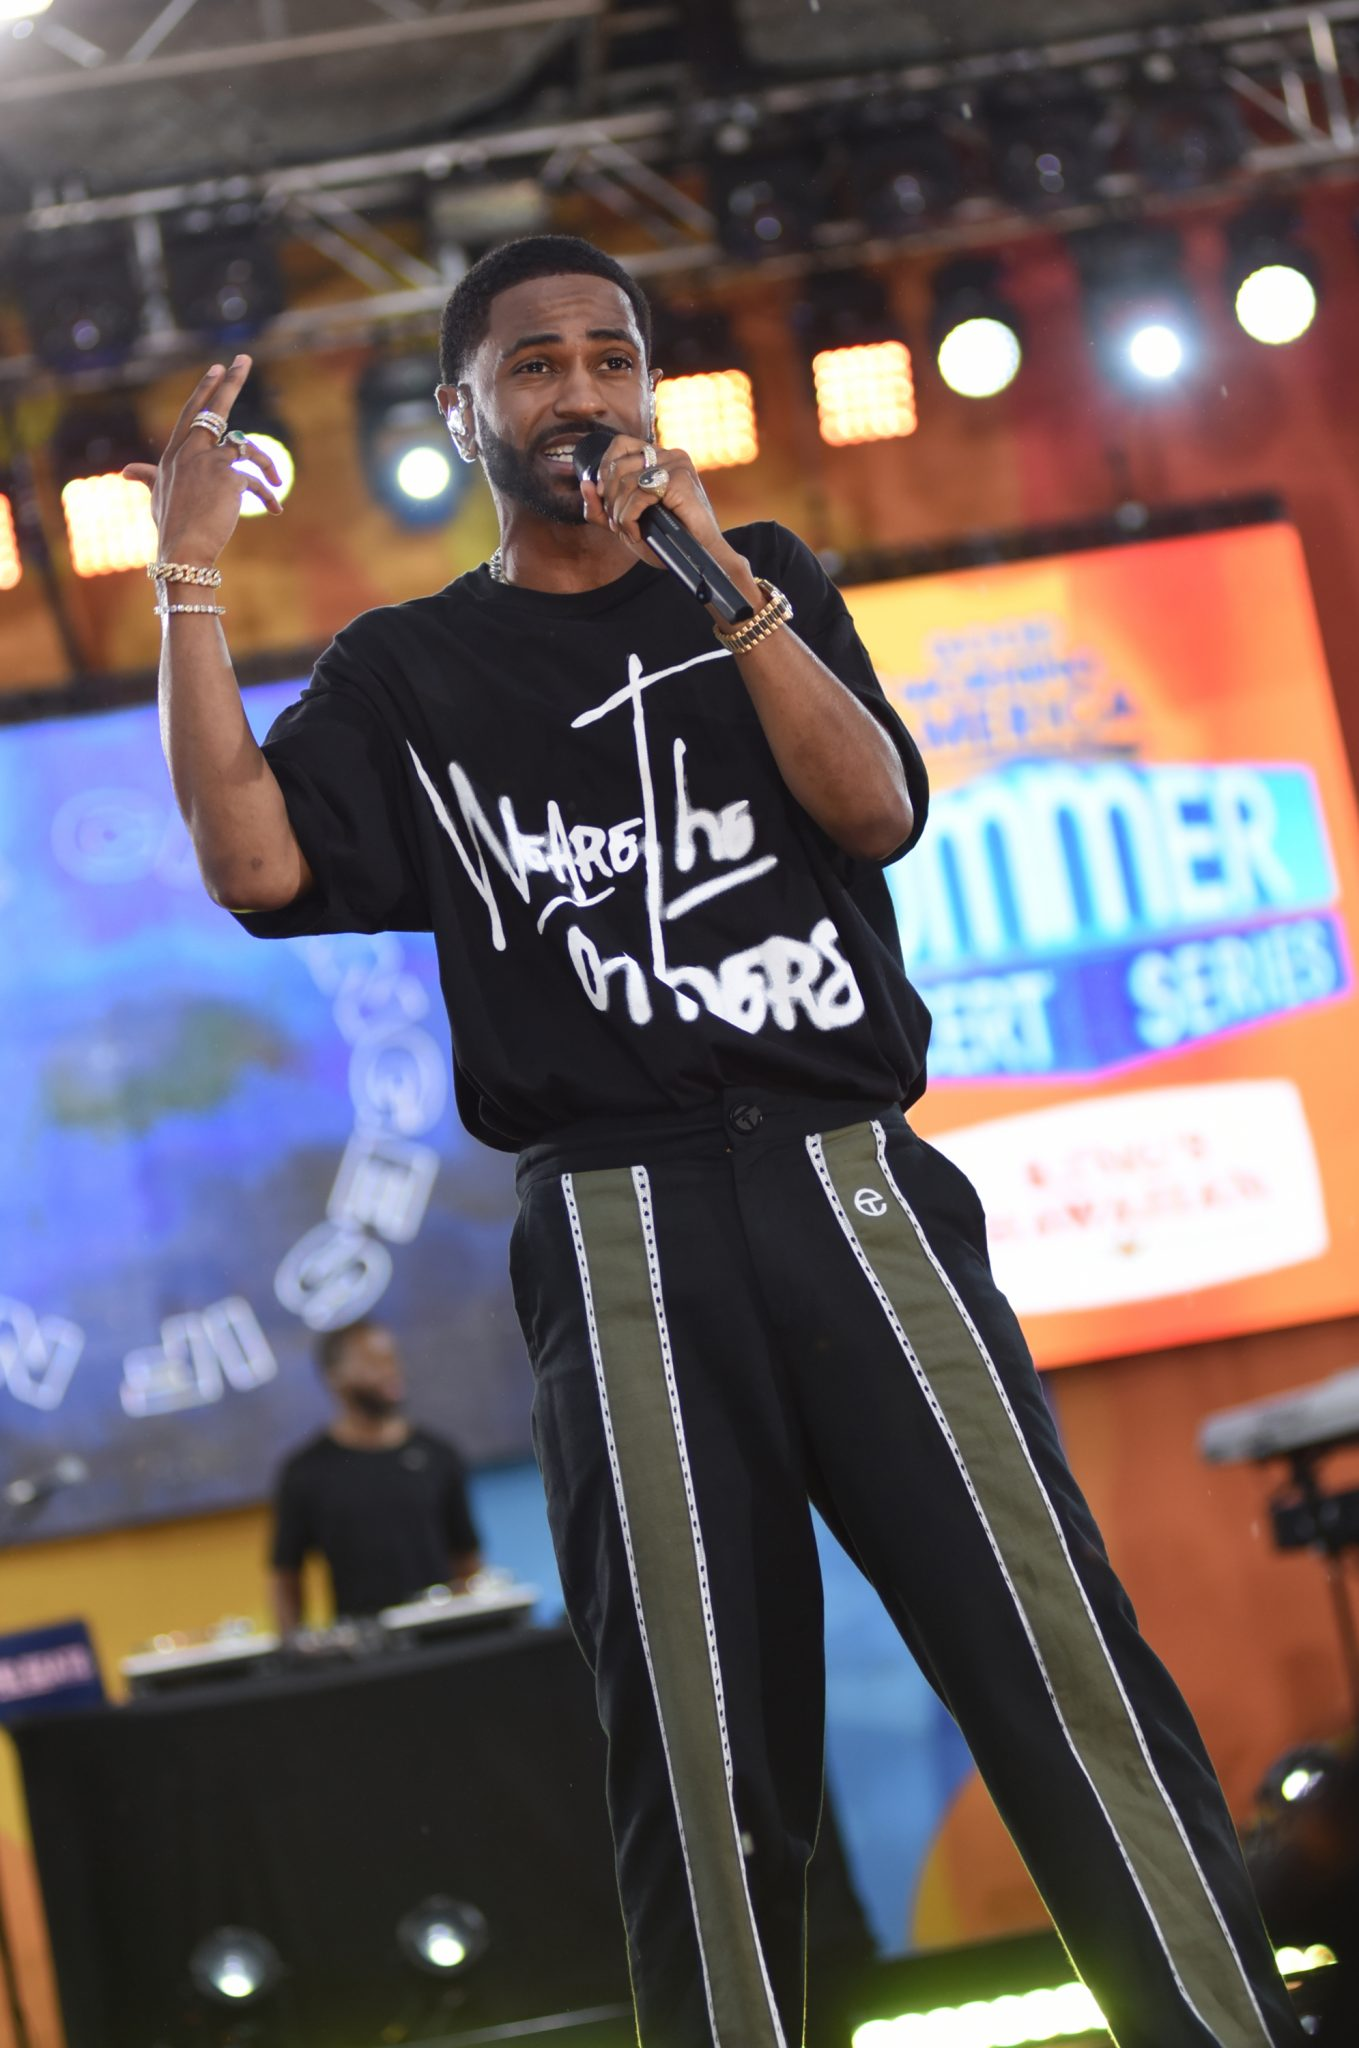 In Case You Missed It: Big Sean On Good Morning America